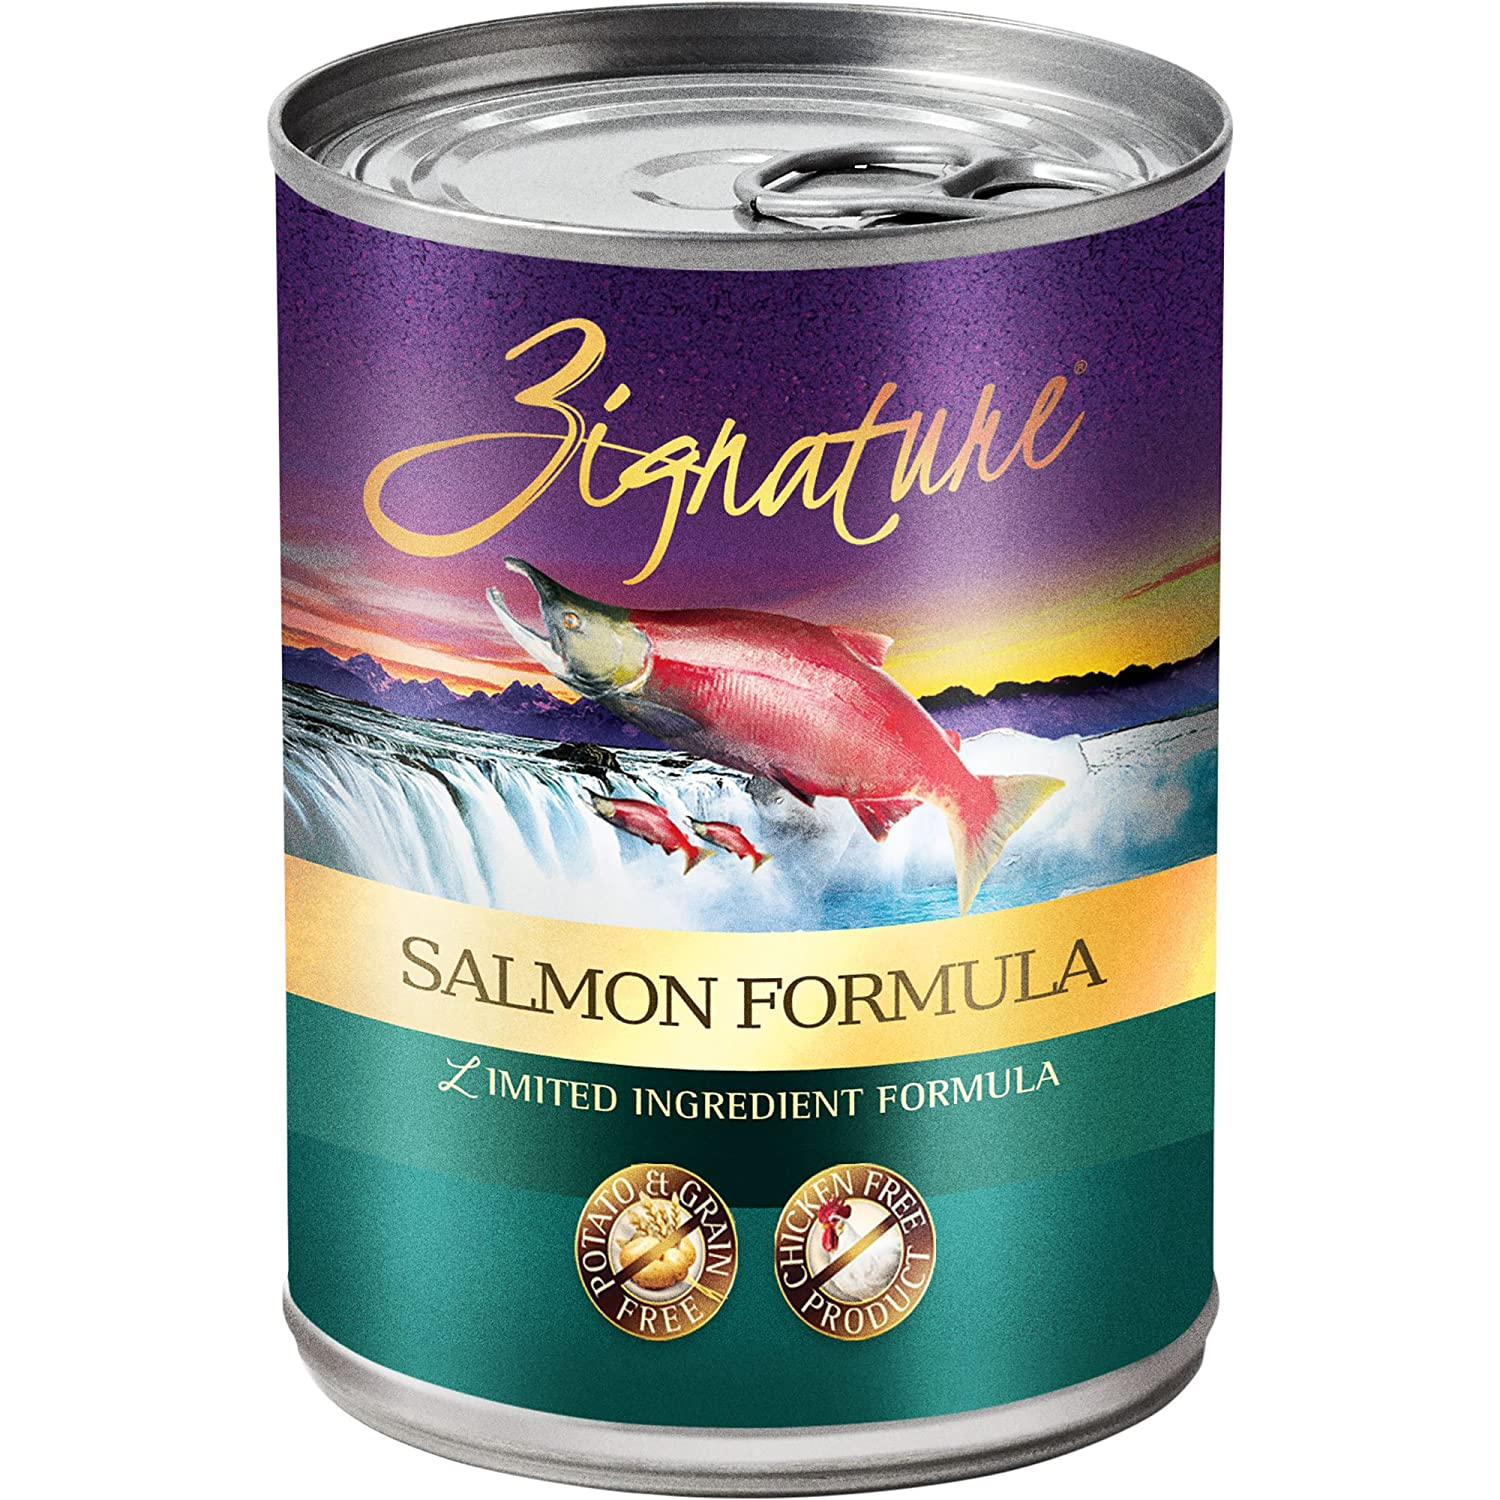 Zignature Salmon Formula Canned Dog Food (12 Pack), 13 oz low-cost